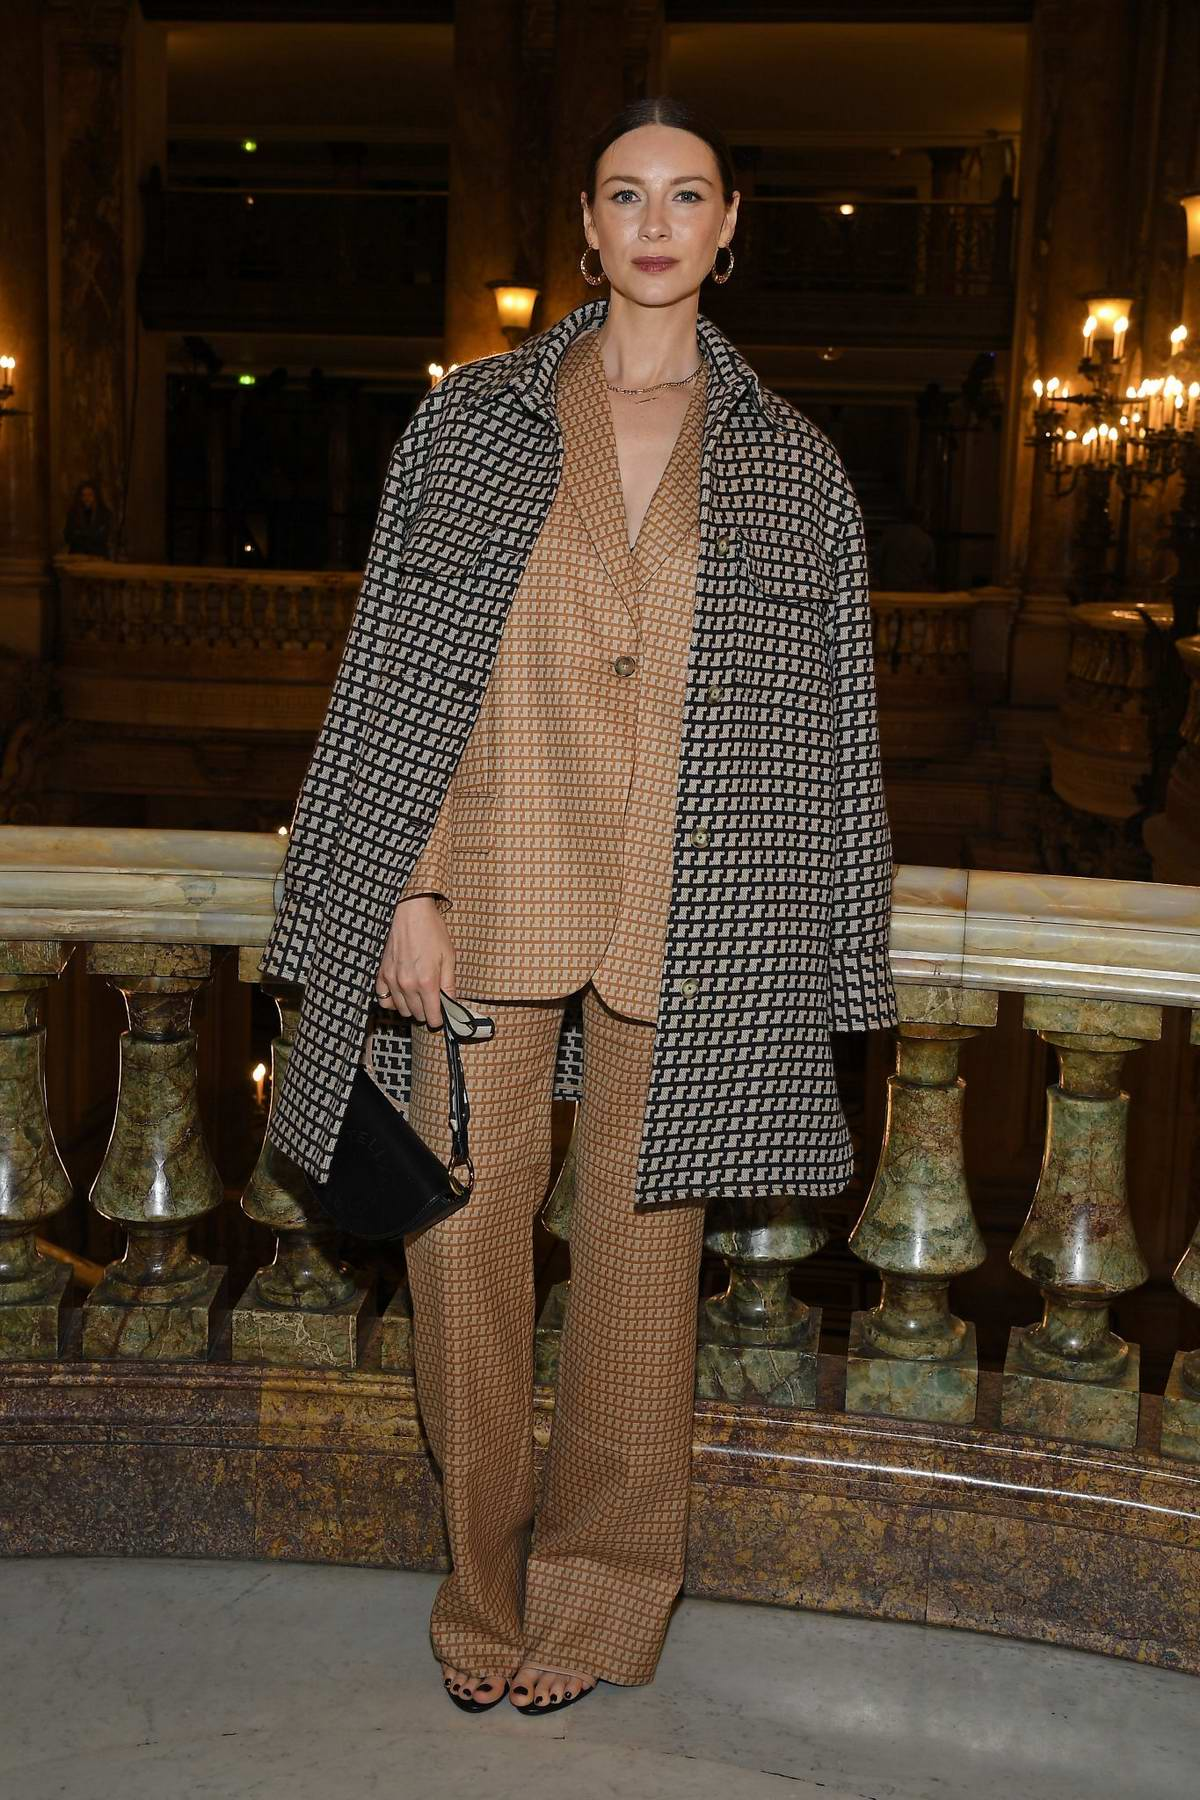 Caitriona Balfe attends the Stella McCartney show, F/W 2020 during Paris Fashion Week in Paris, France